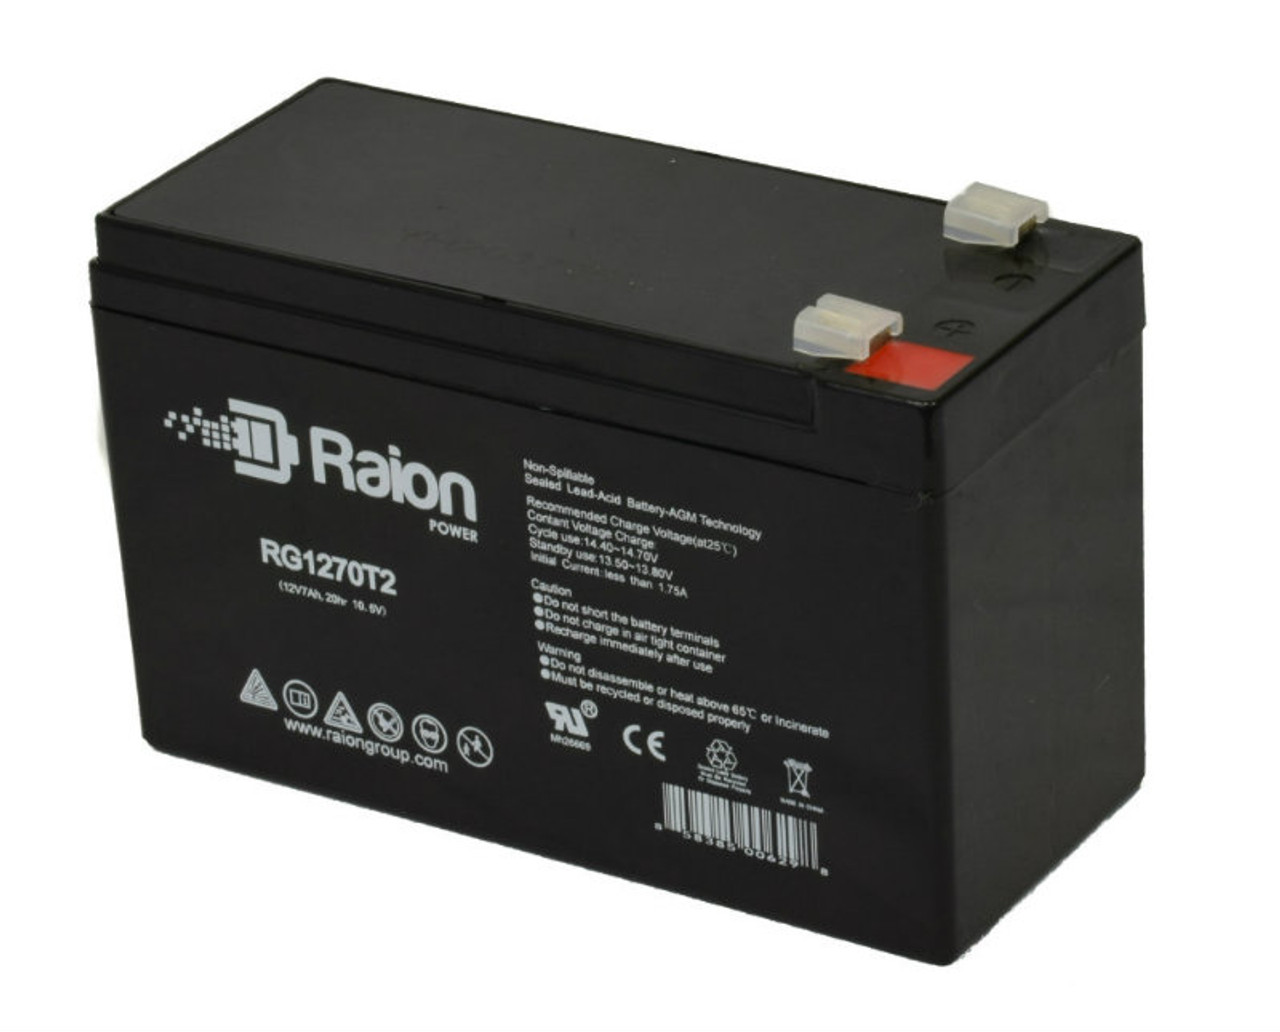 Raion Power RG1270T1 Replacement Battery for Sunnyway SW1275